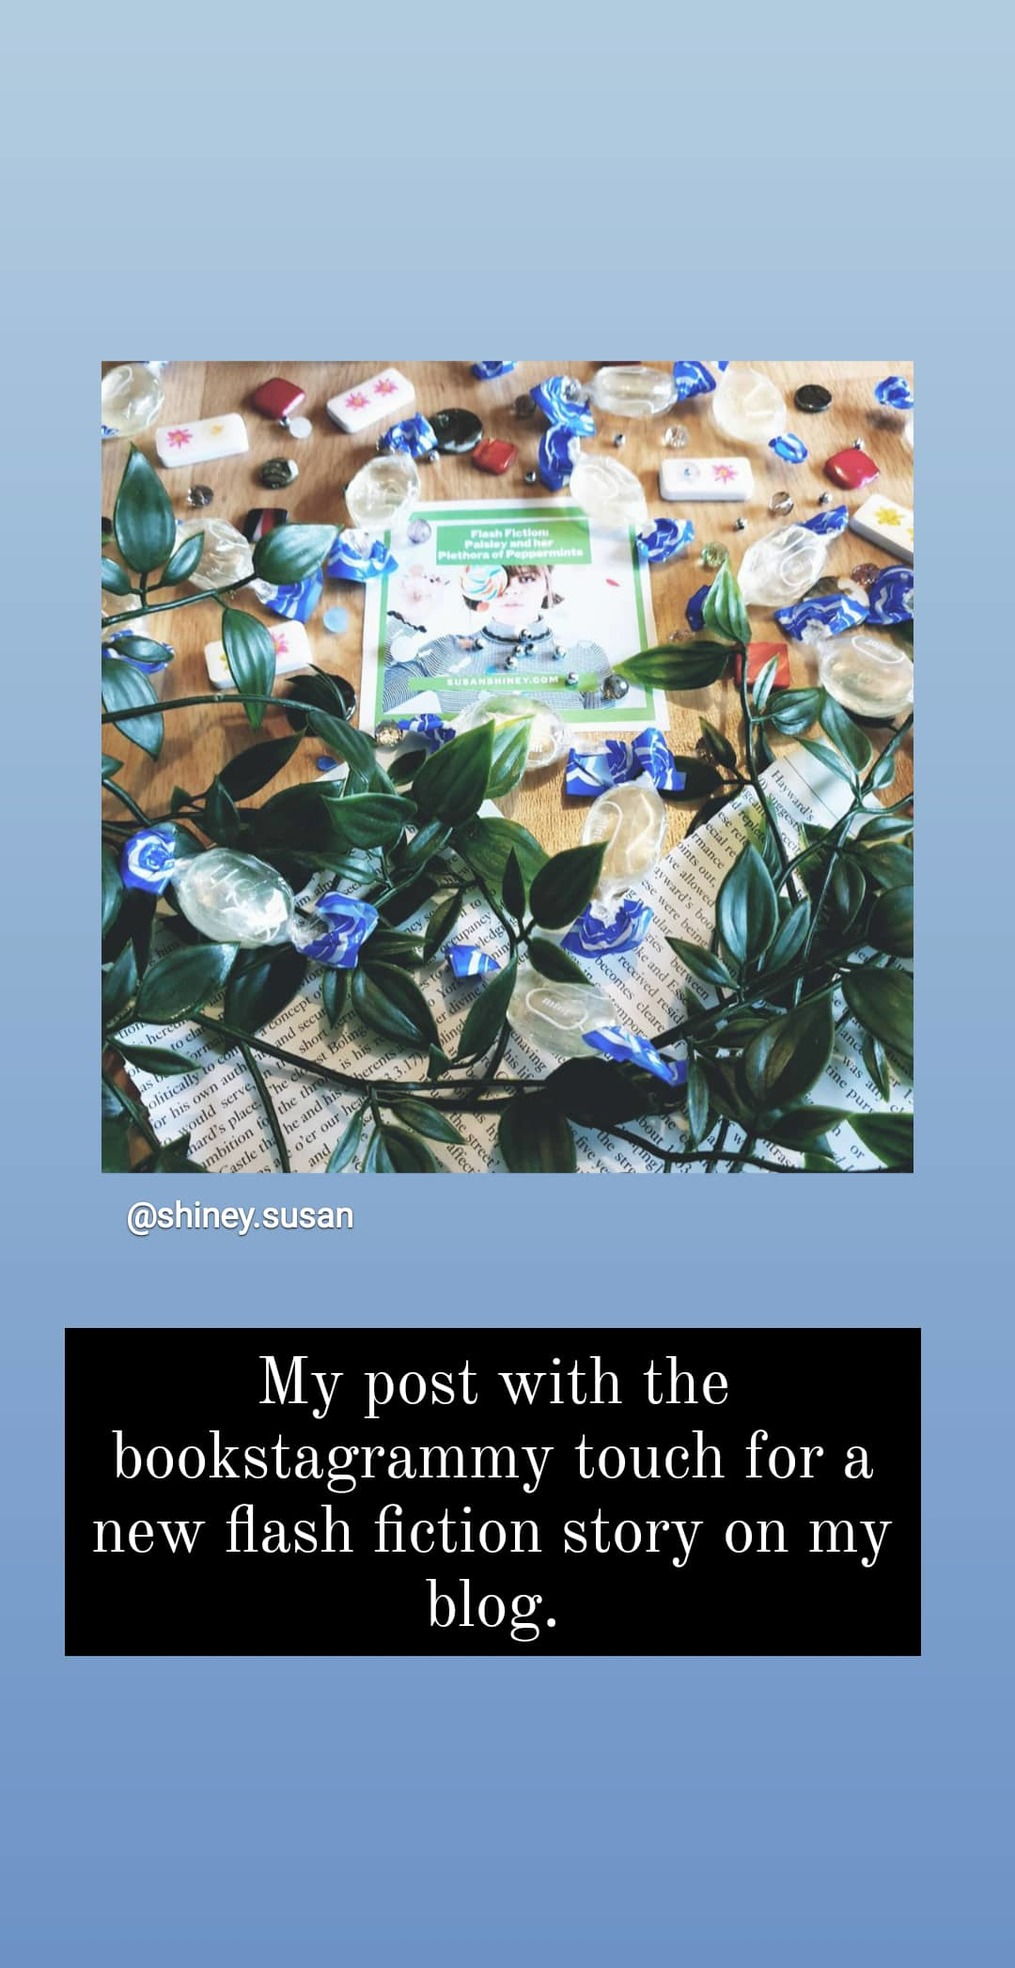 My-strategies-Instagram-Stories-for-Writers-susan-shiney-sharing-a-blog-post-announcement-refering-to-a-video-how-to-use-instagram-stories